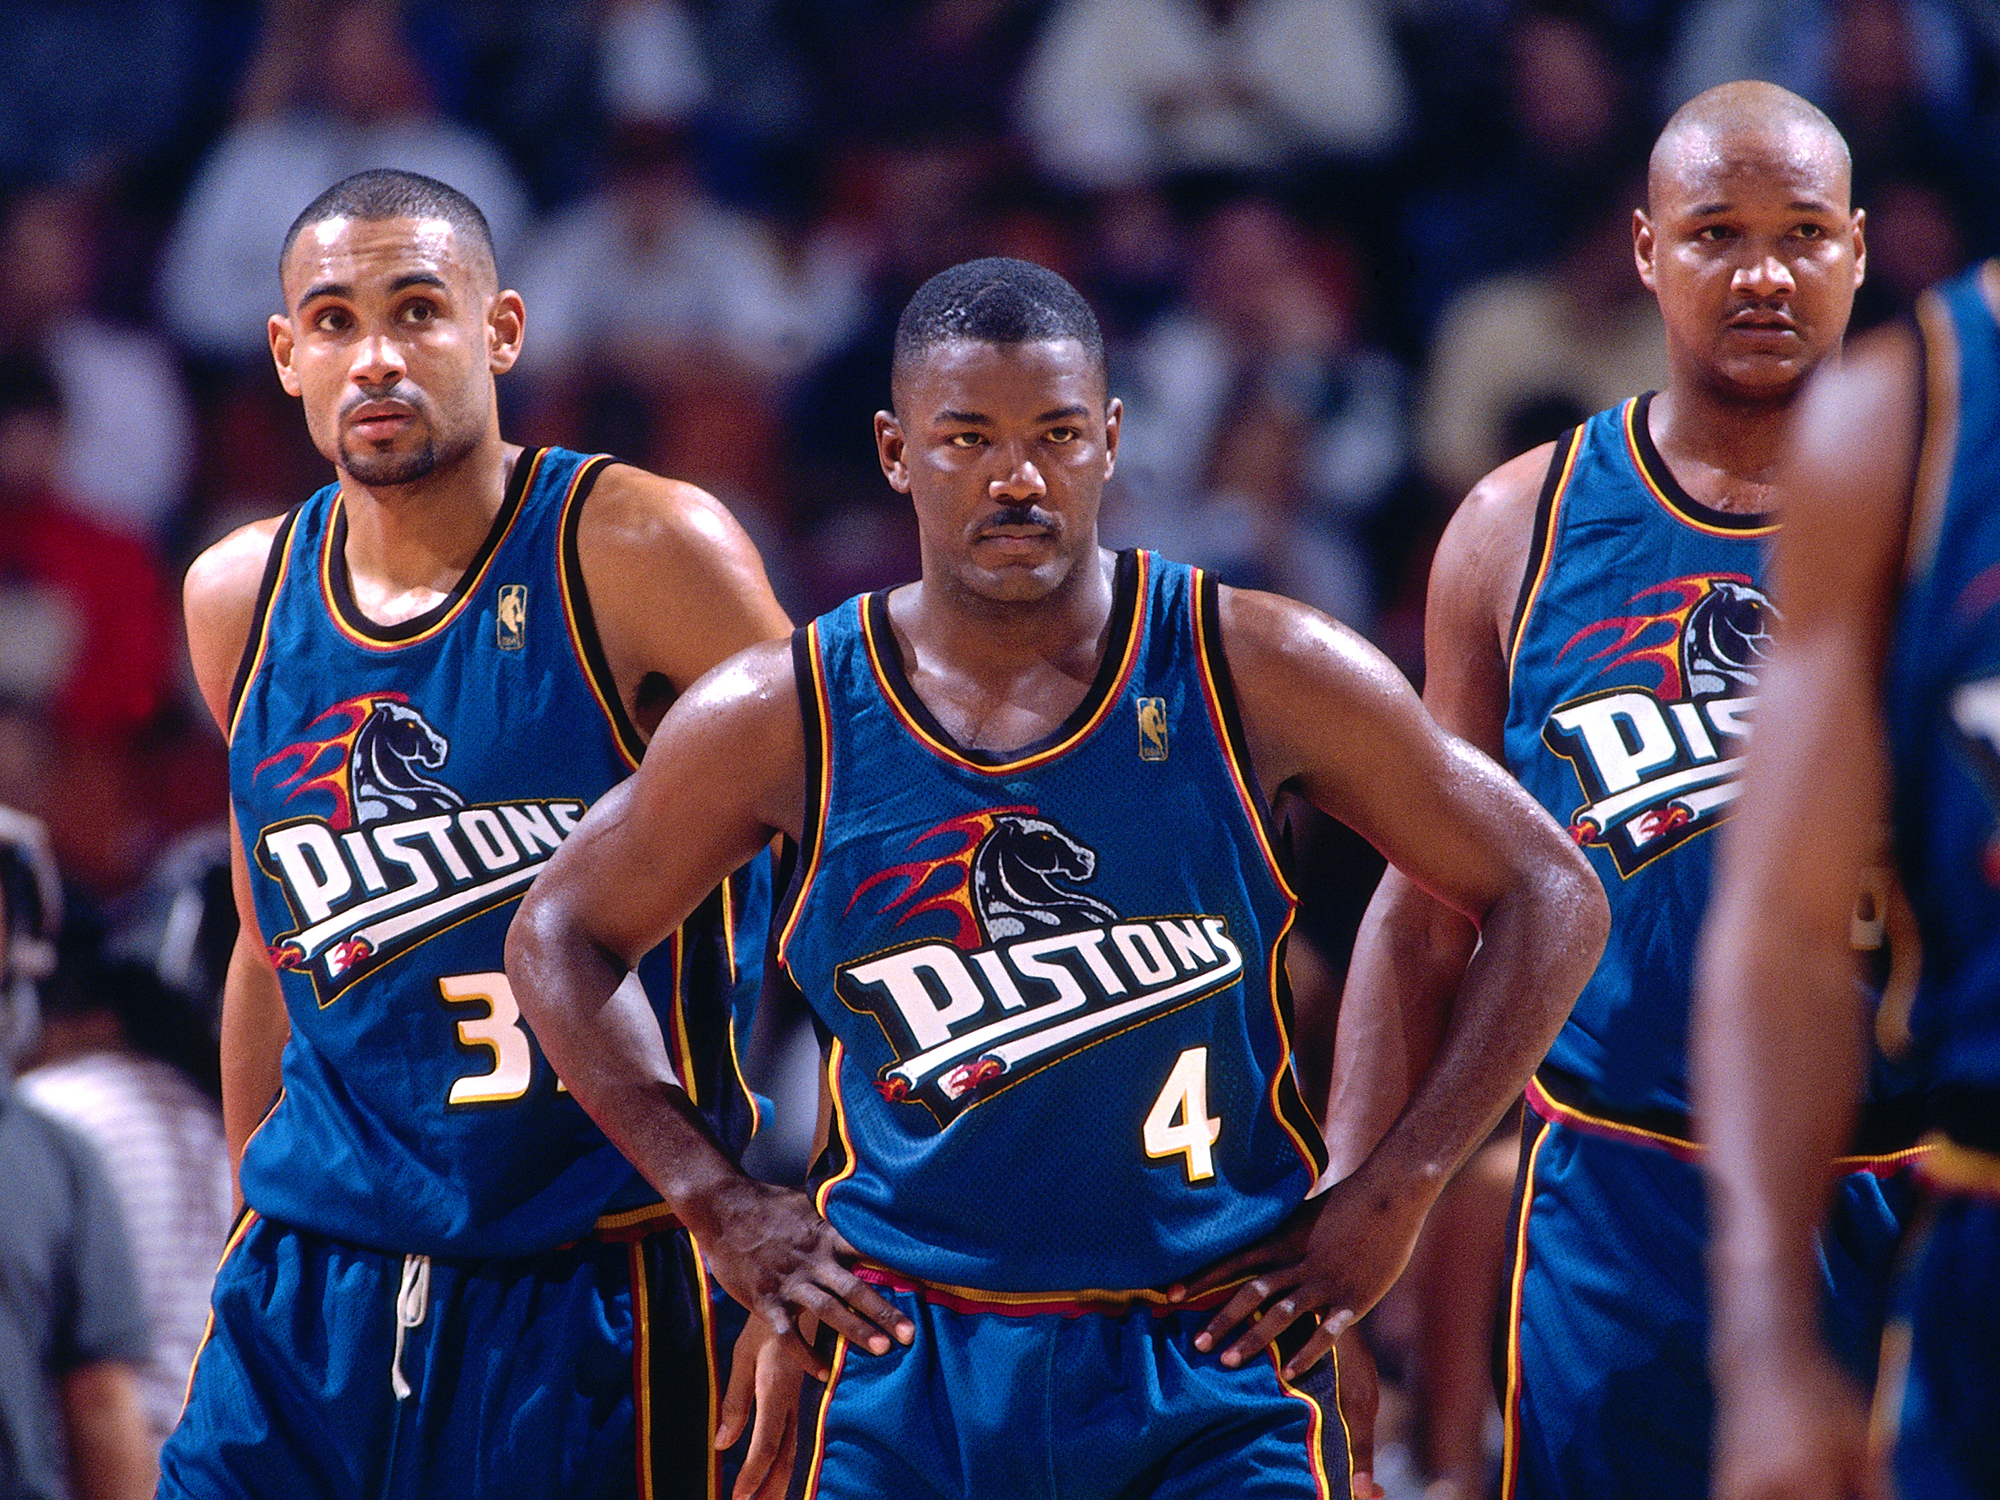 pistons-teal-best-nba-jerseys.jpg